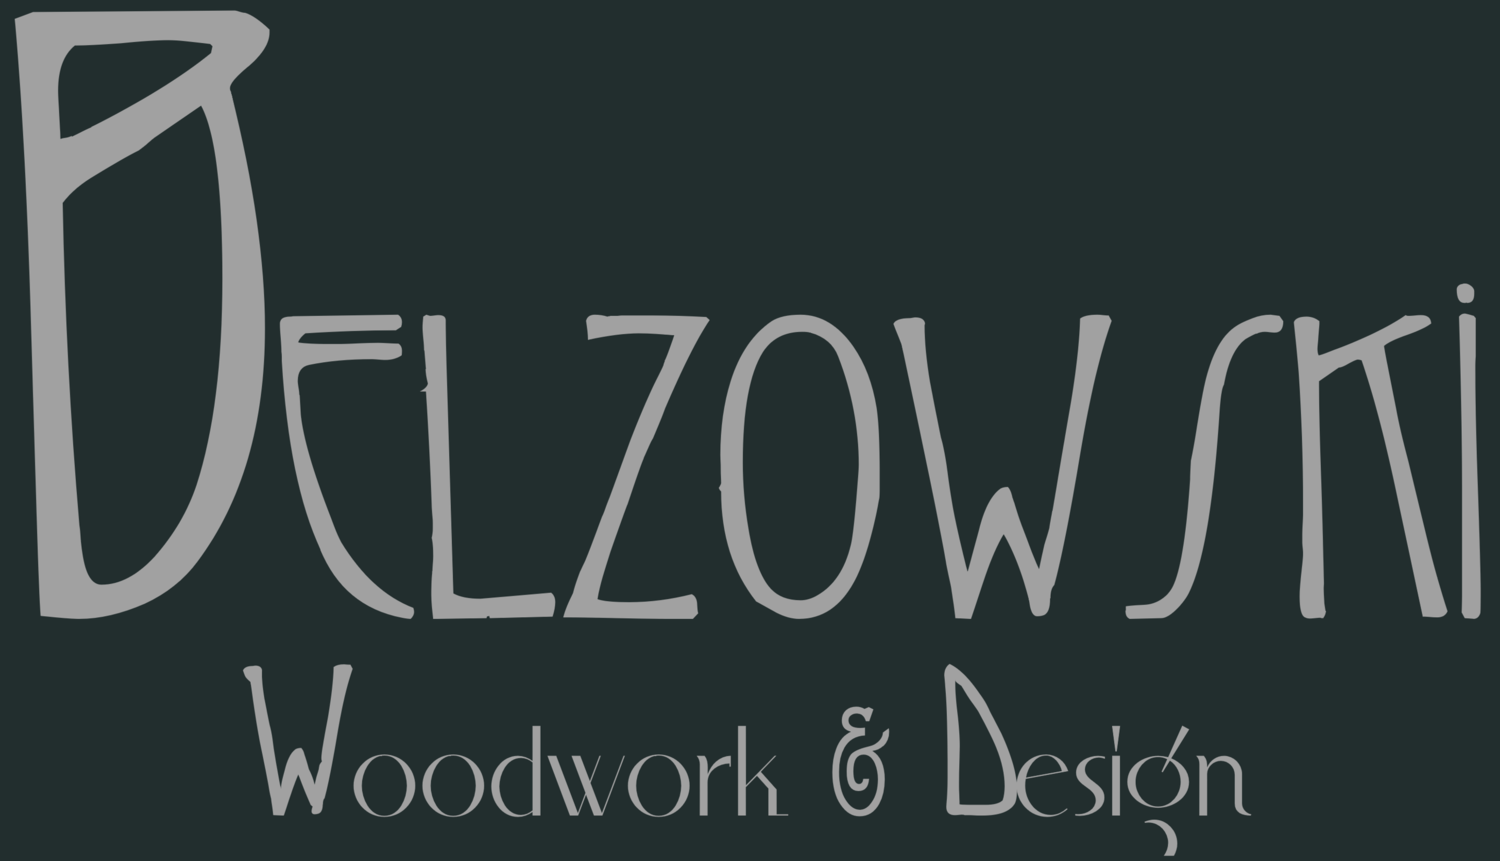 Belzowski Woodwork & Design